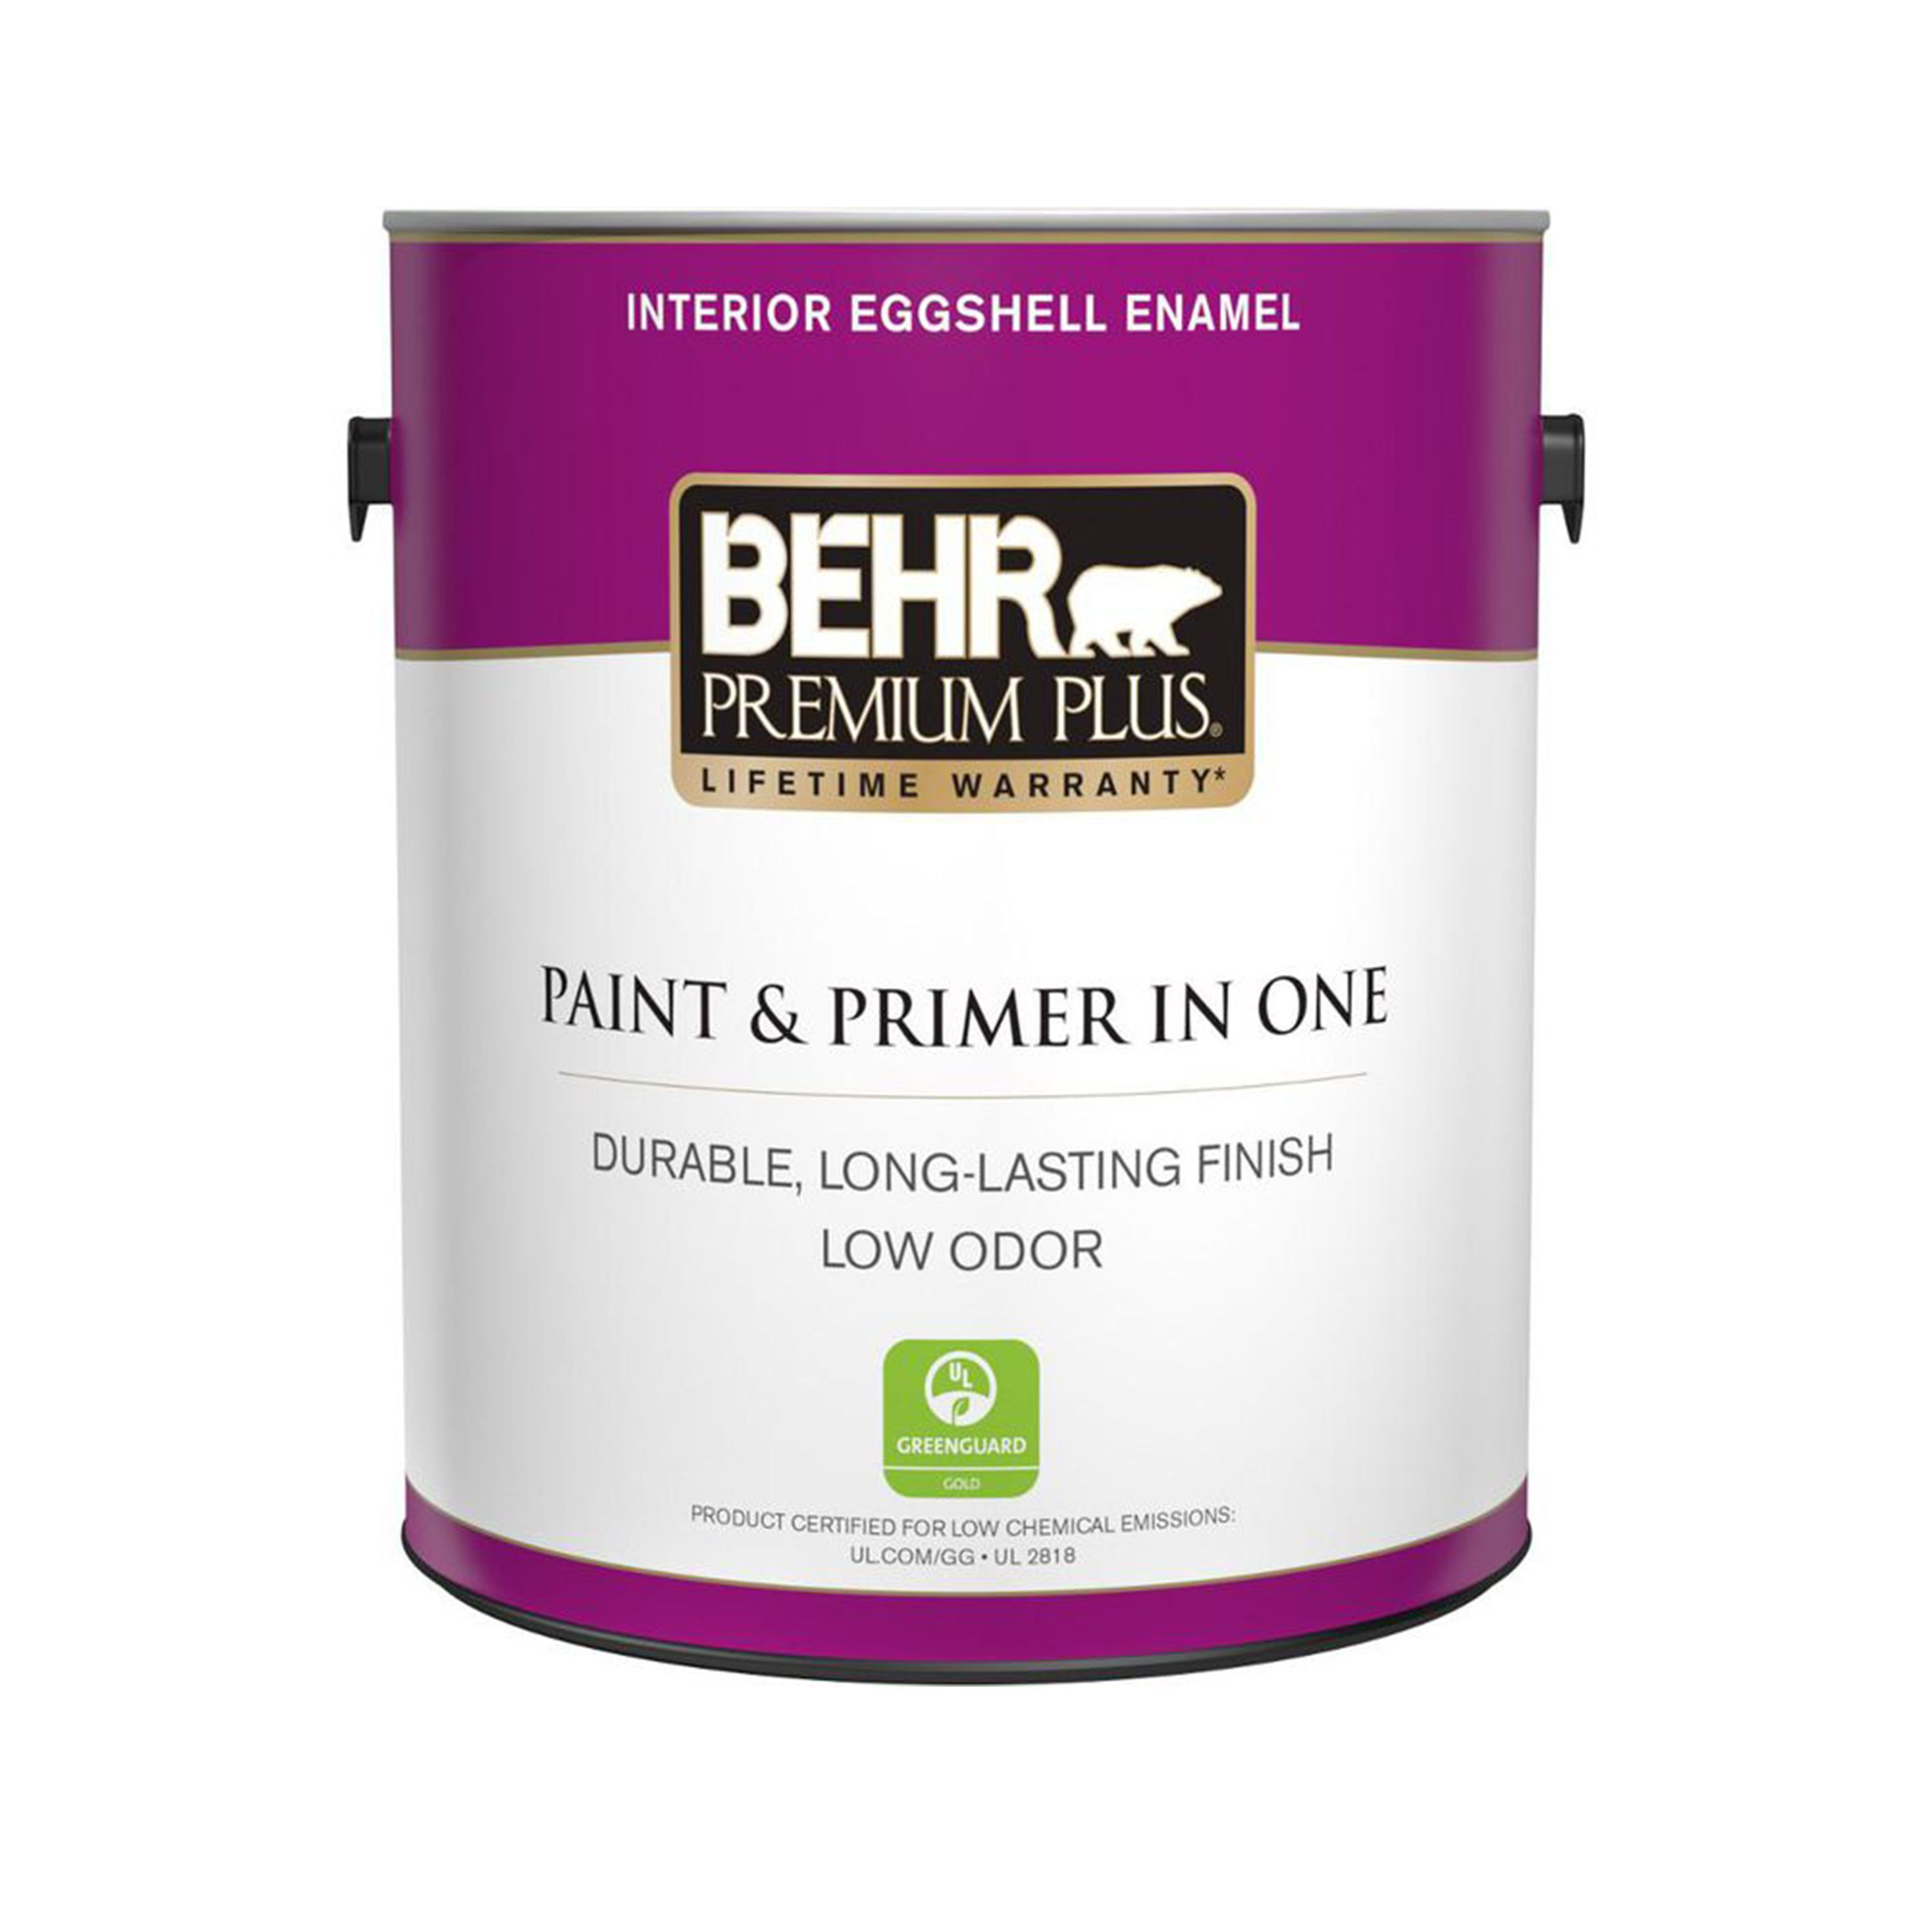 10 Best Interior Paint Brands 2019 Reviews Of Top Paints For Indoor Walls